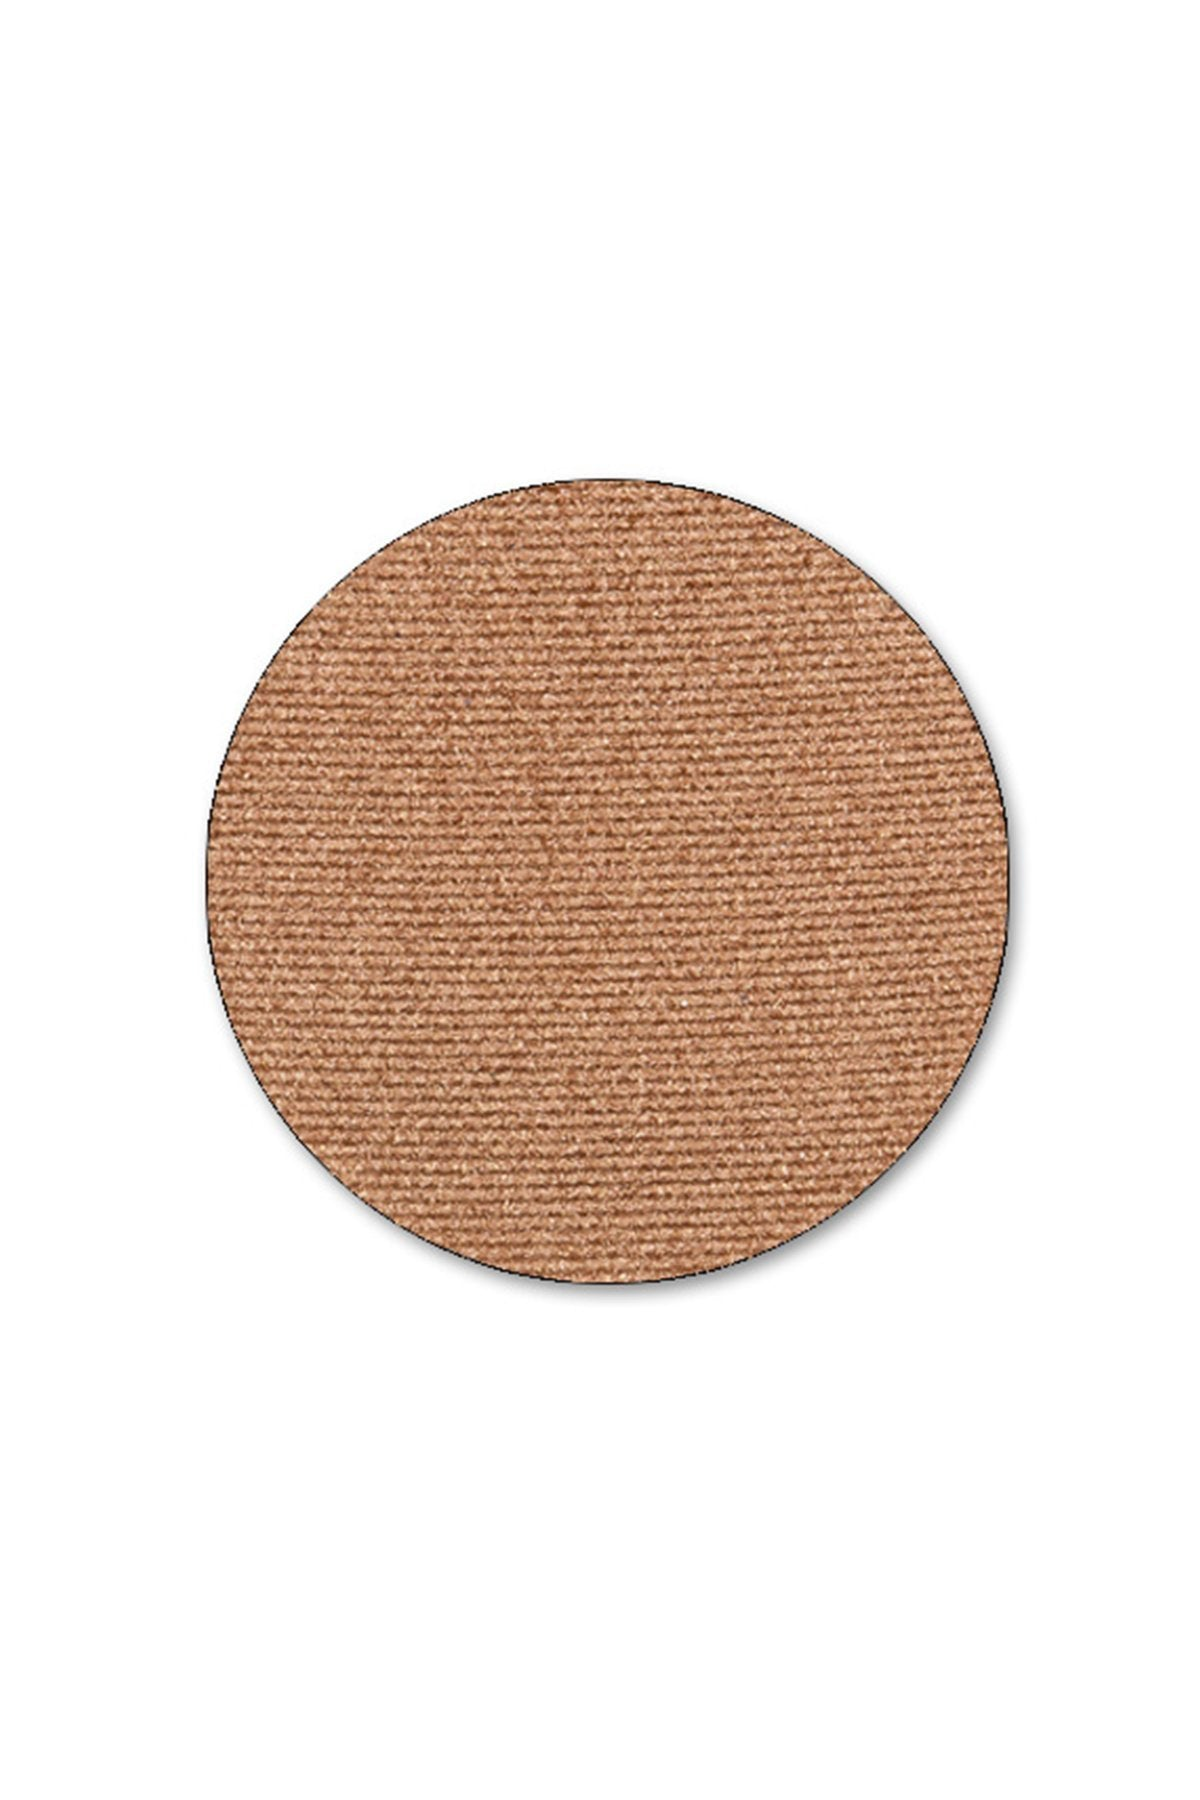 Eyeshadow Pan Brazilian Bronze-257, Eye - shopdyi.com